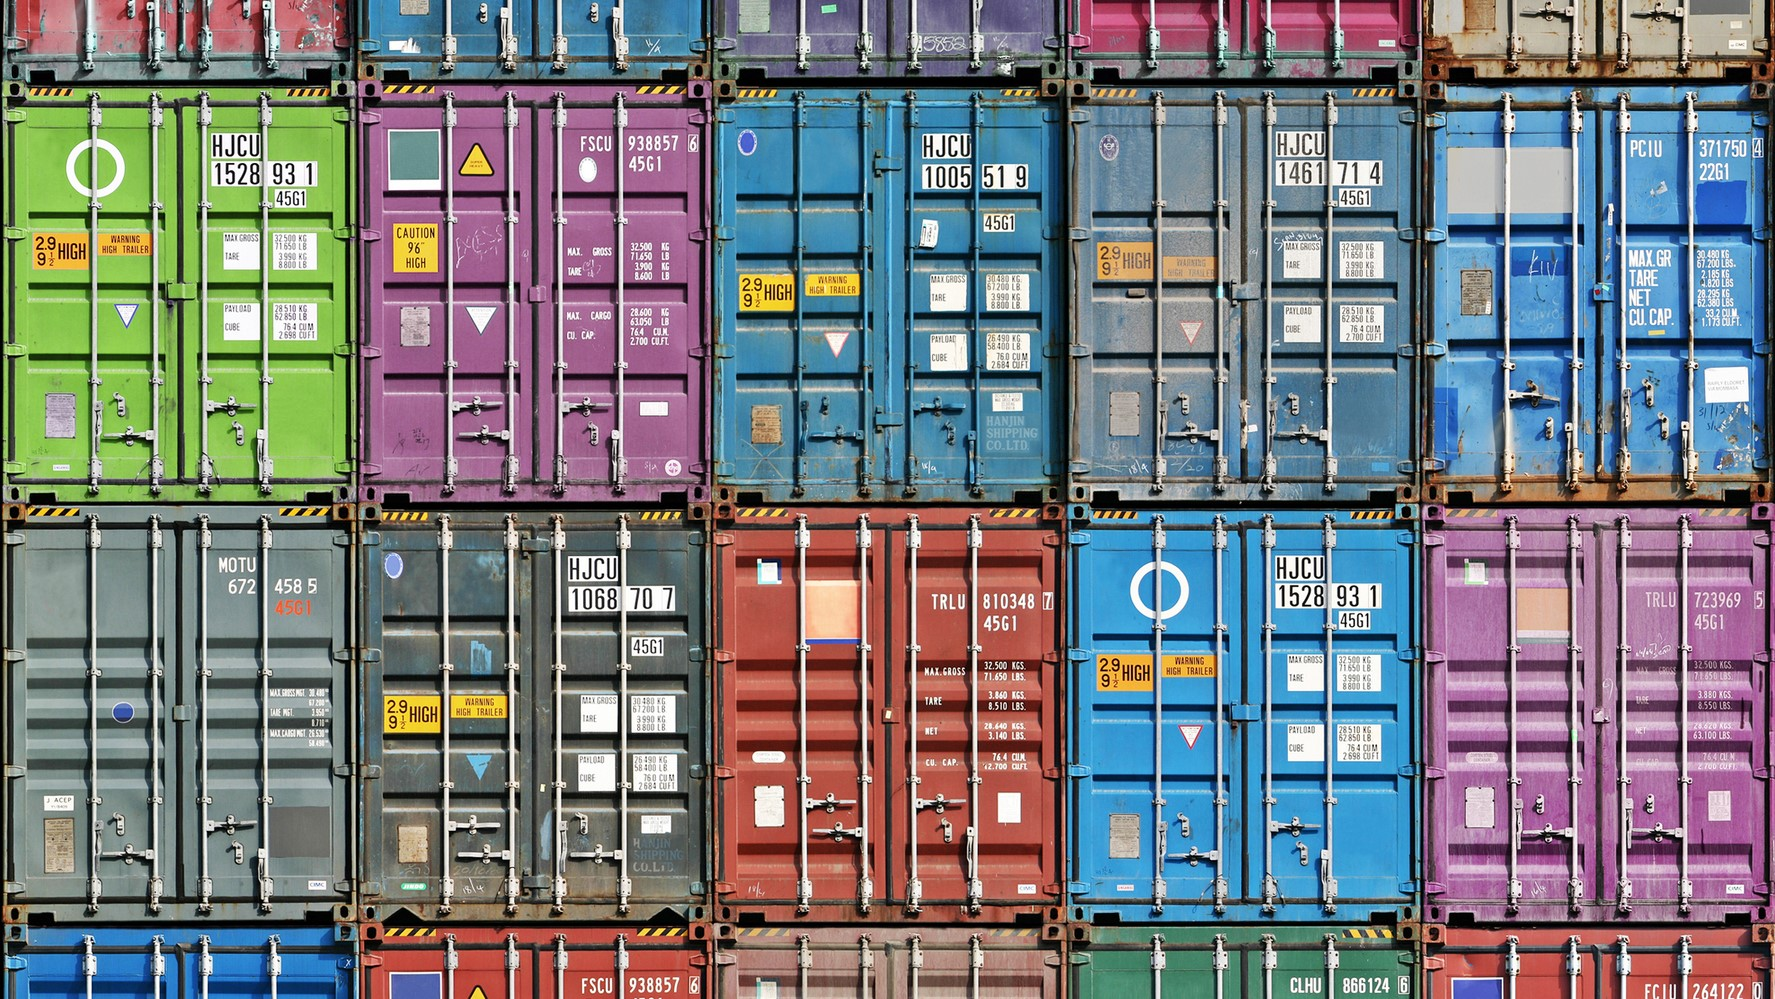 Abandoned overseas containers, who is paying the costs? 1